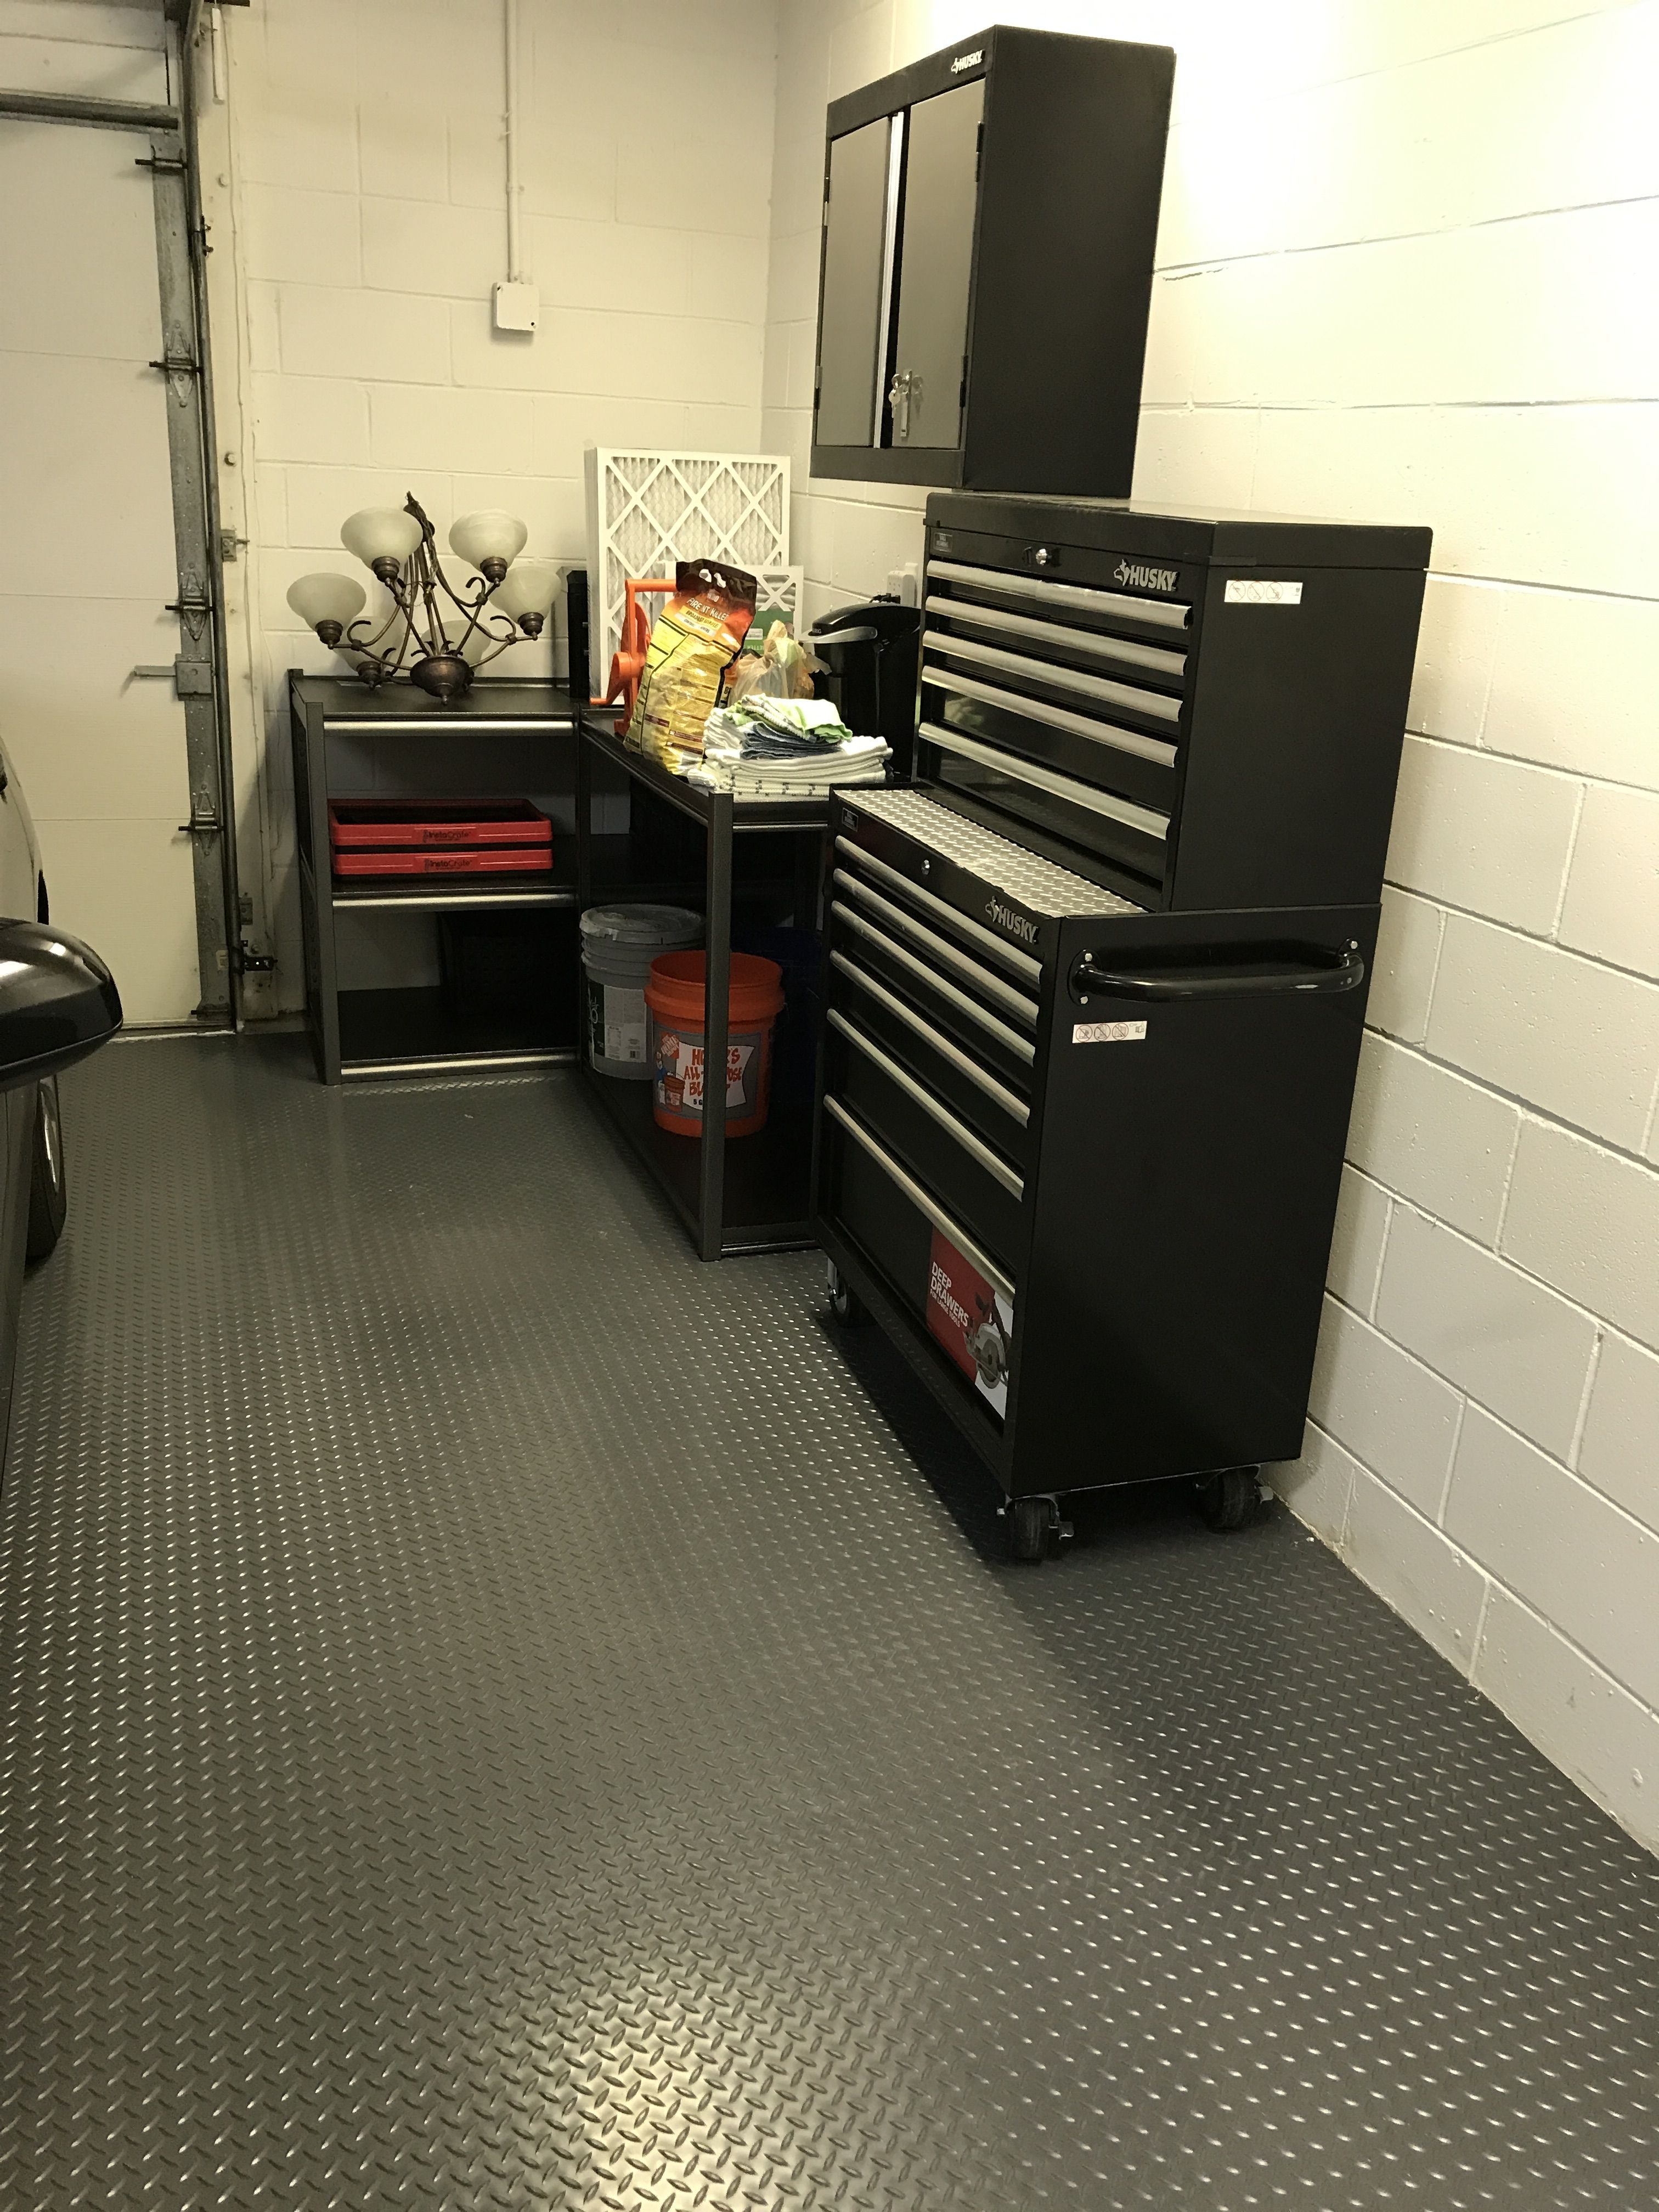 Costco Rubber Garage Floor Mats With Diamond Pattern Much Cheaper Than Epoxy Rubber Flooring Rubber Flooring Kitchen Rubber Floor Mats